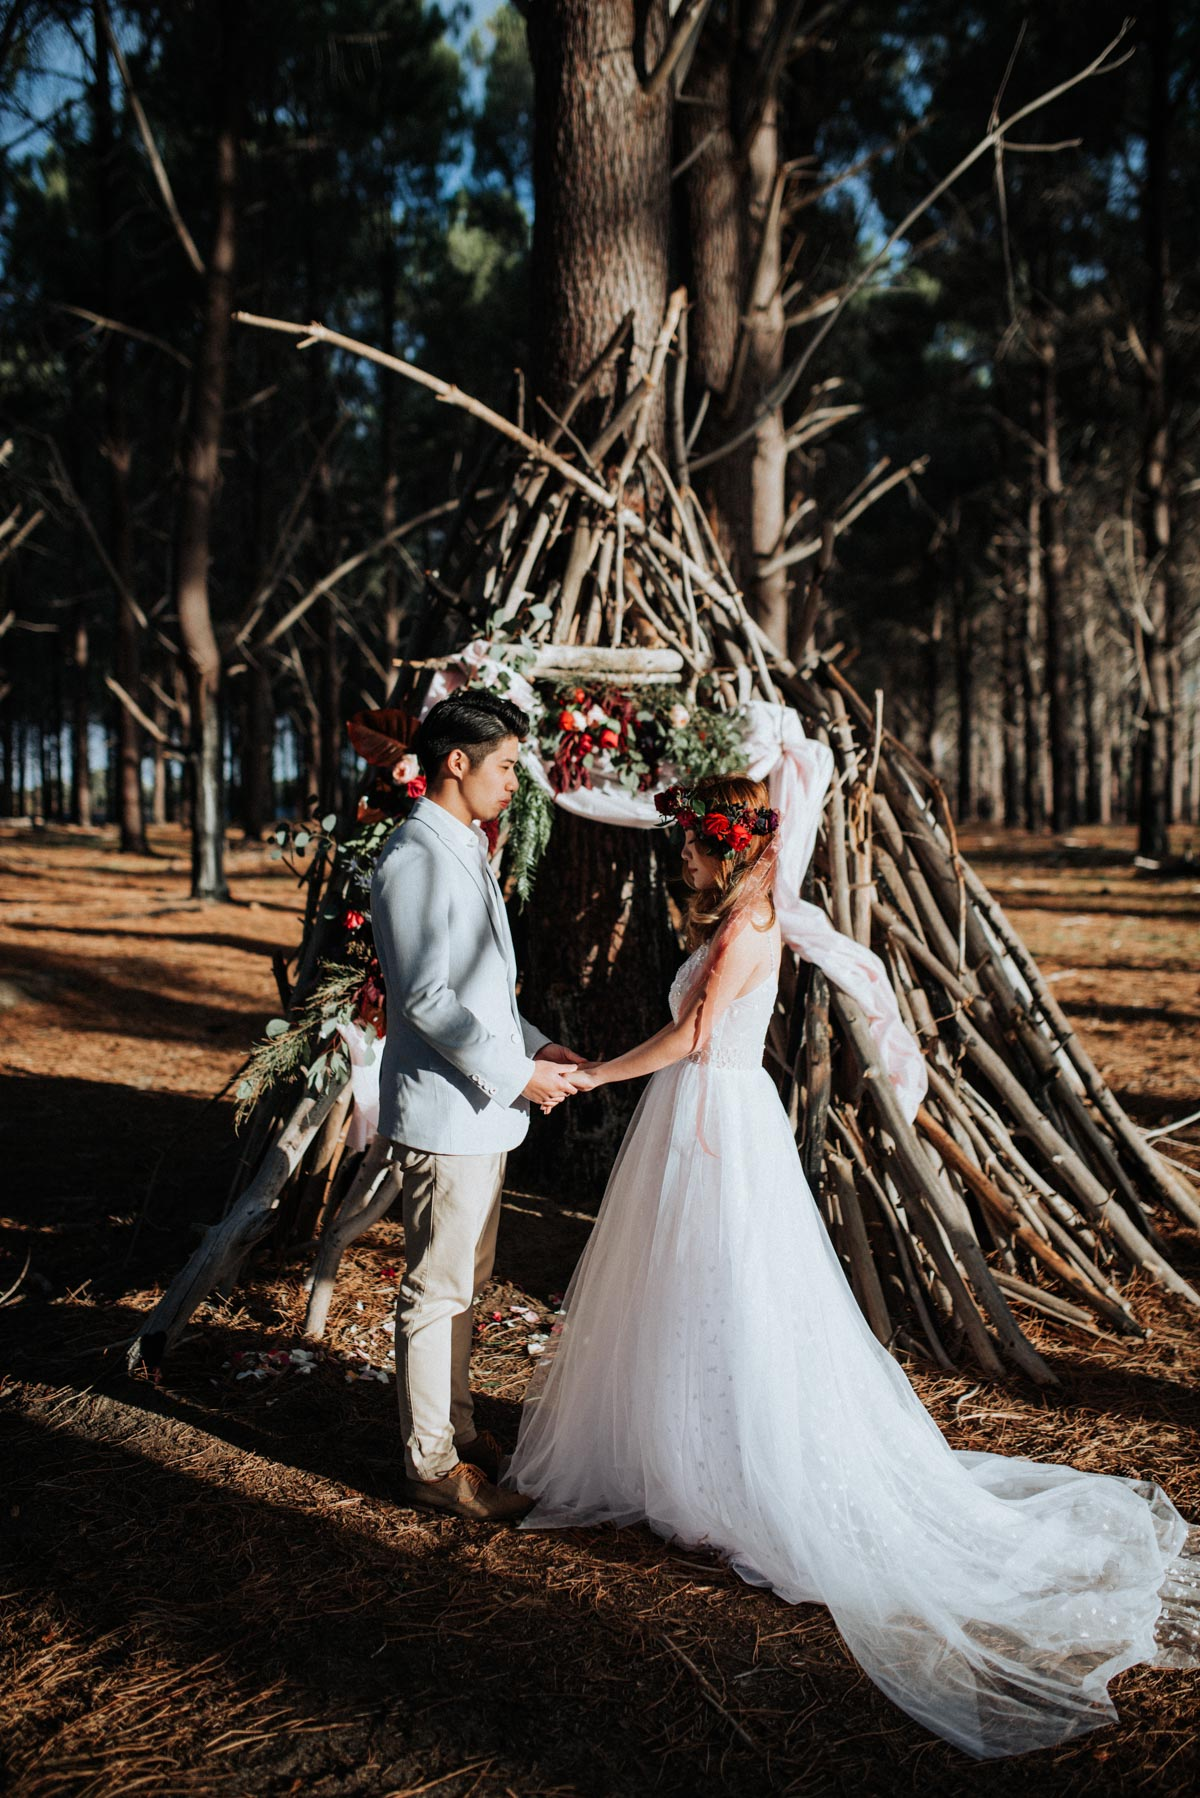 james-julene-forest-elopement-perth-7.JPG